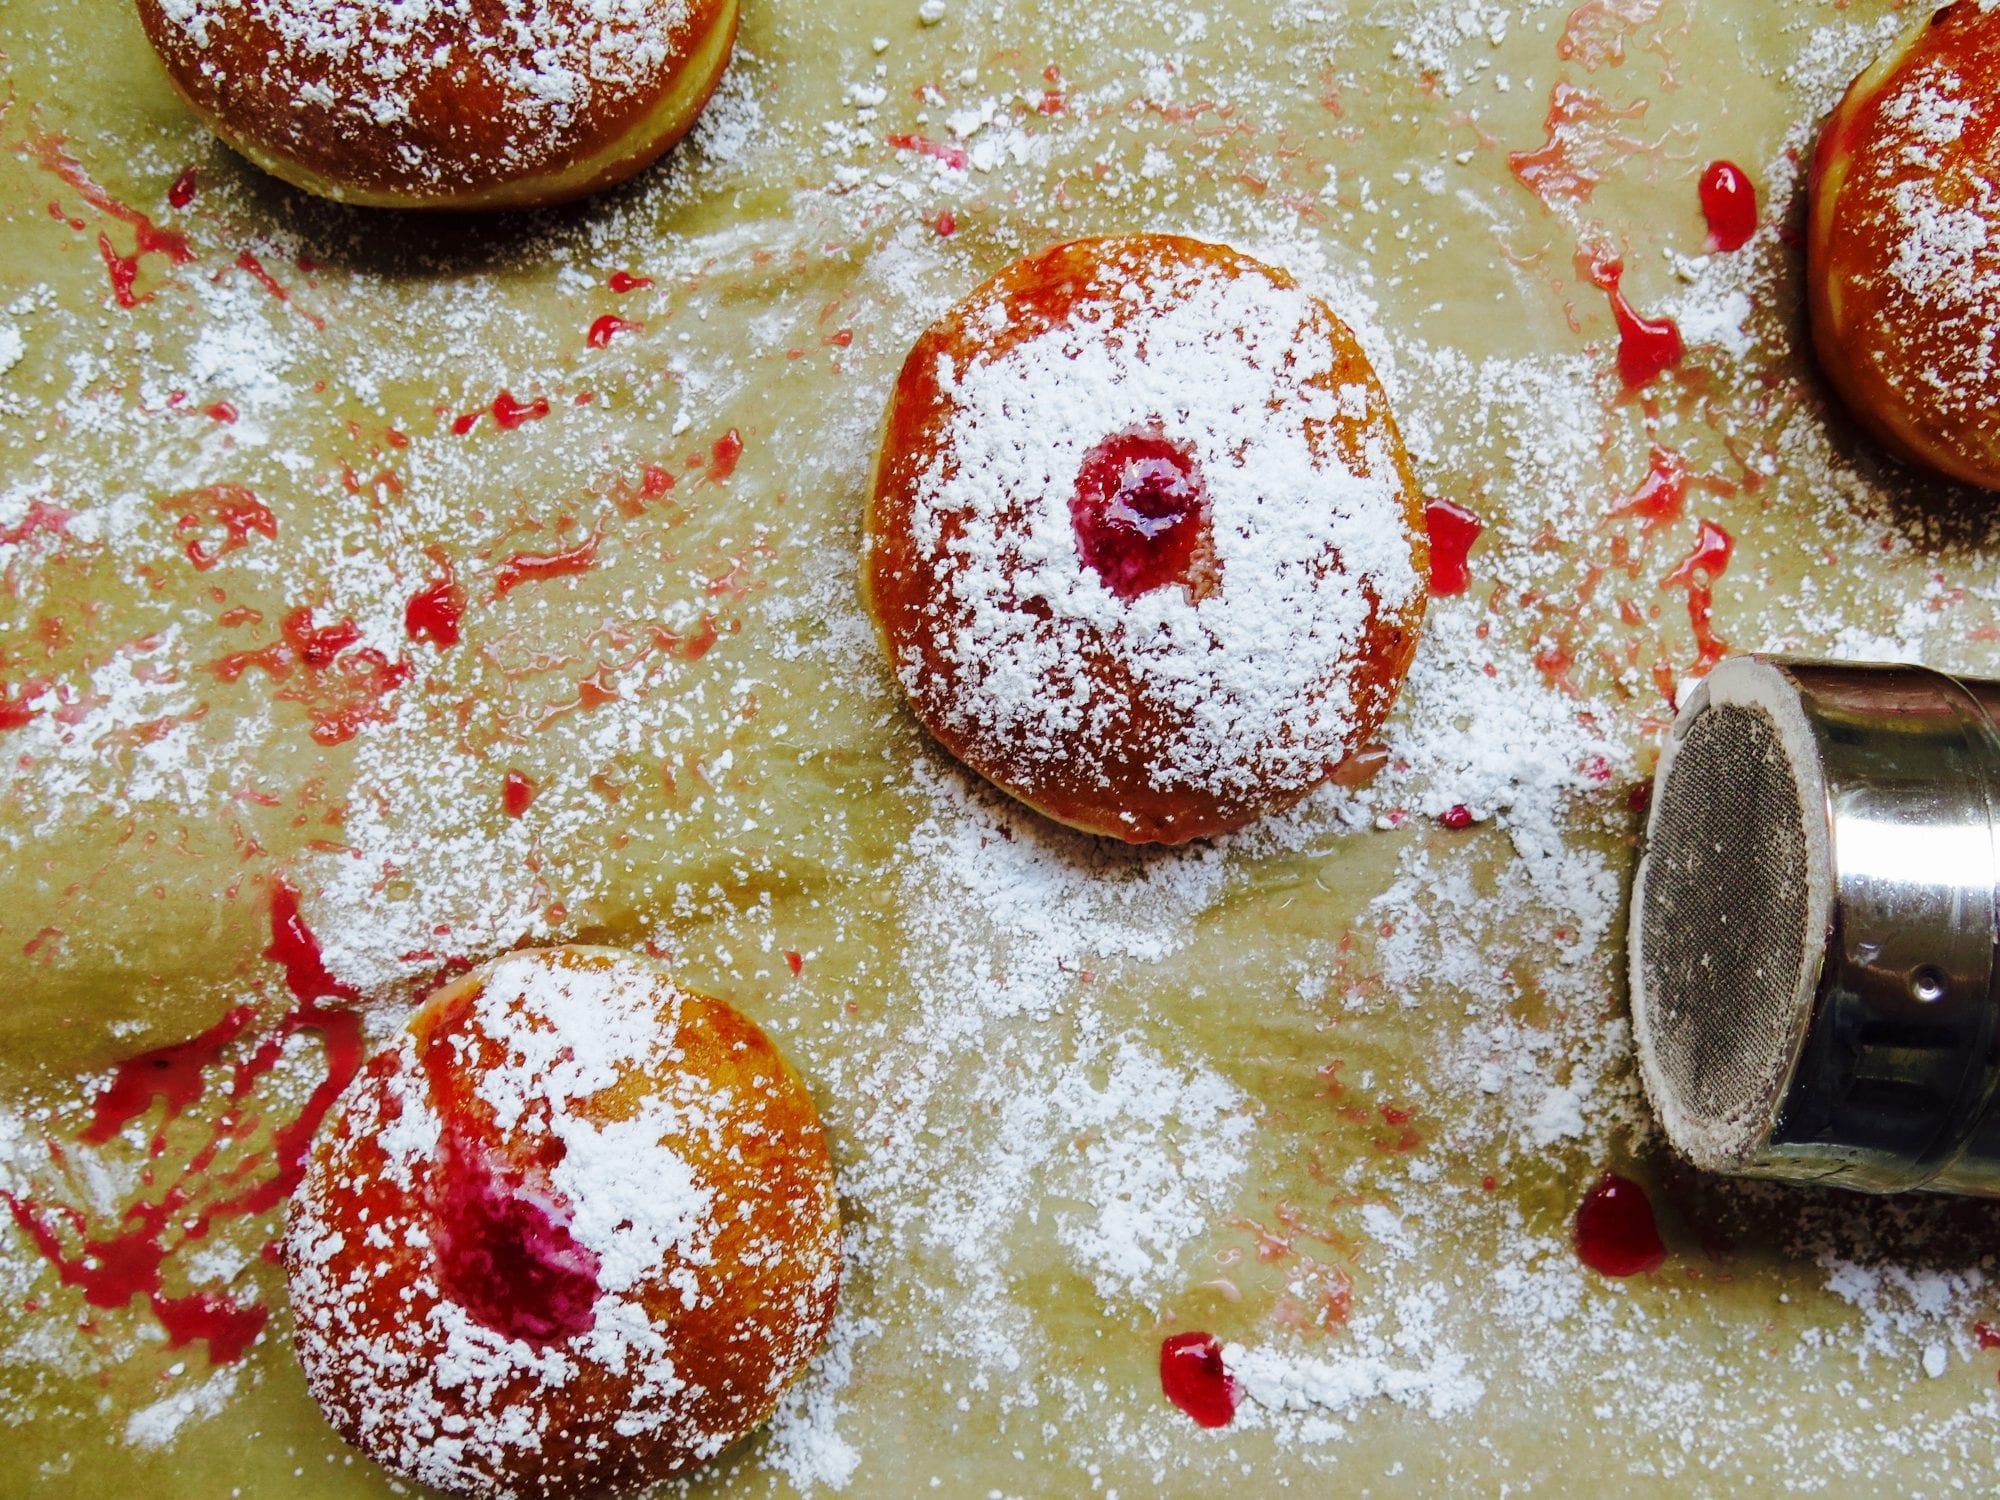 red currant jelly doughnuts - it's a messy job . . .